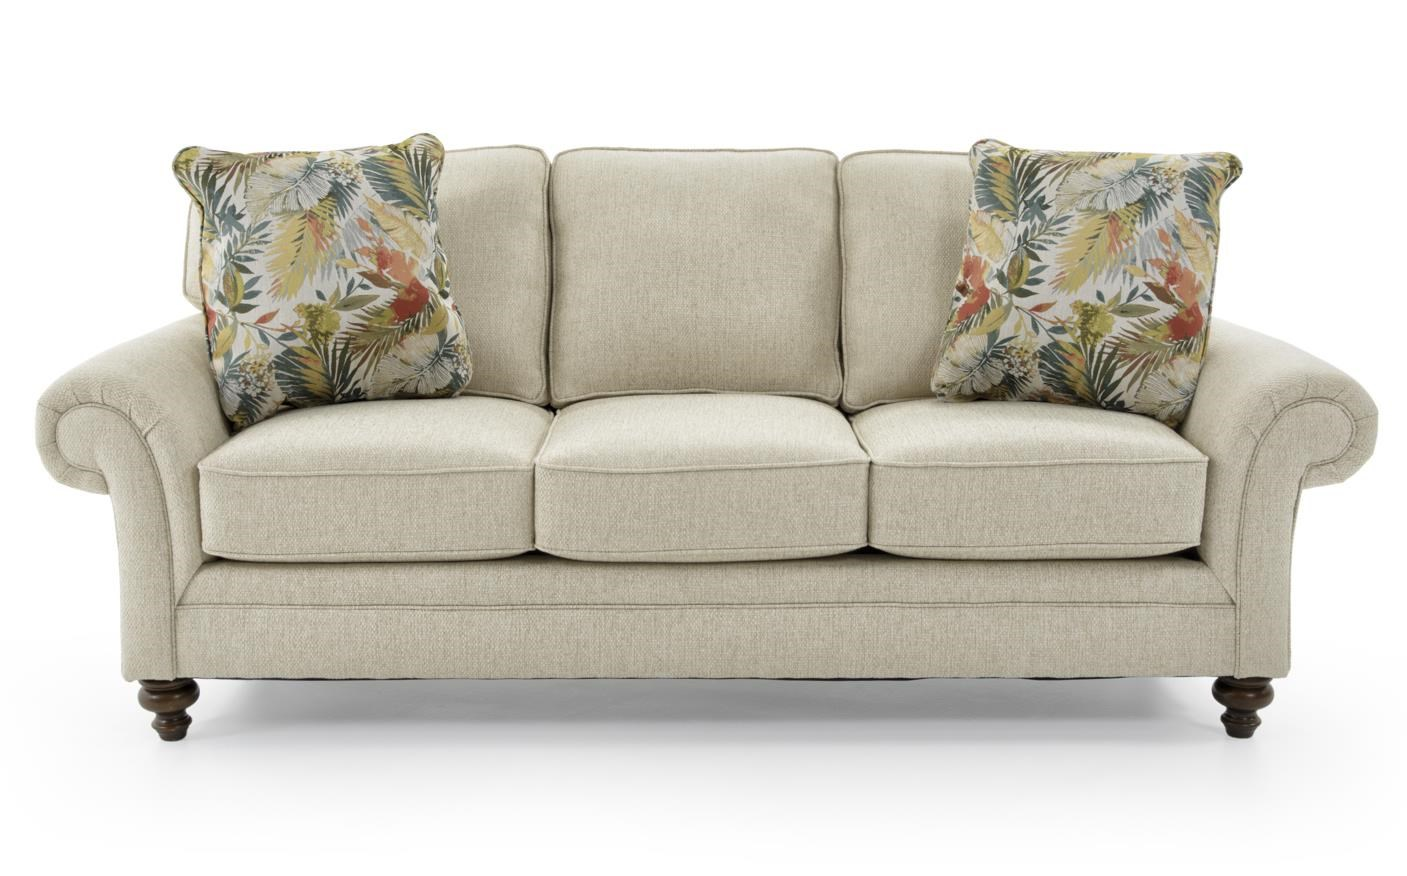 Broyhill furniture larissa 6112 3 4666 92 upholstered for Best quality upholstered furniture